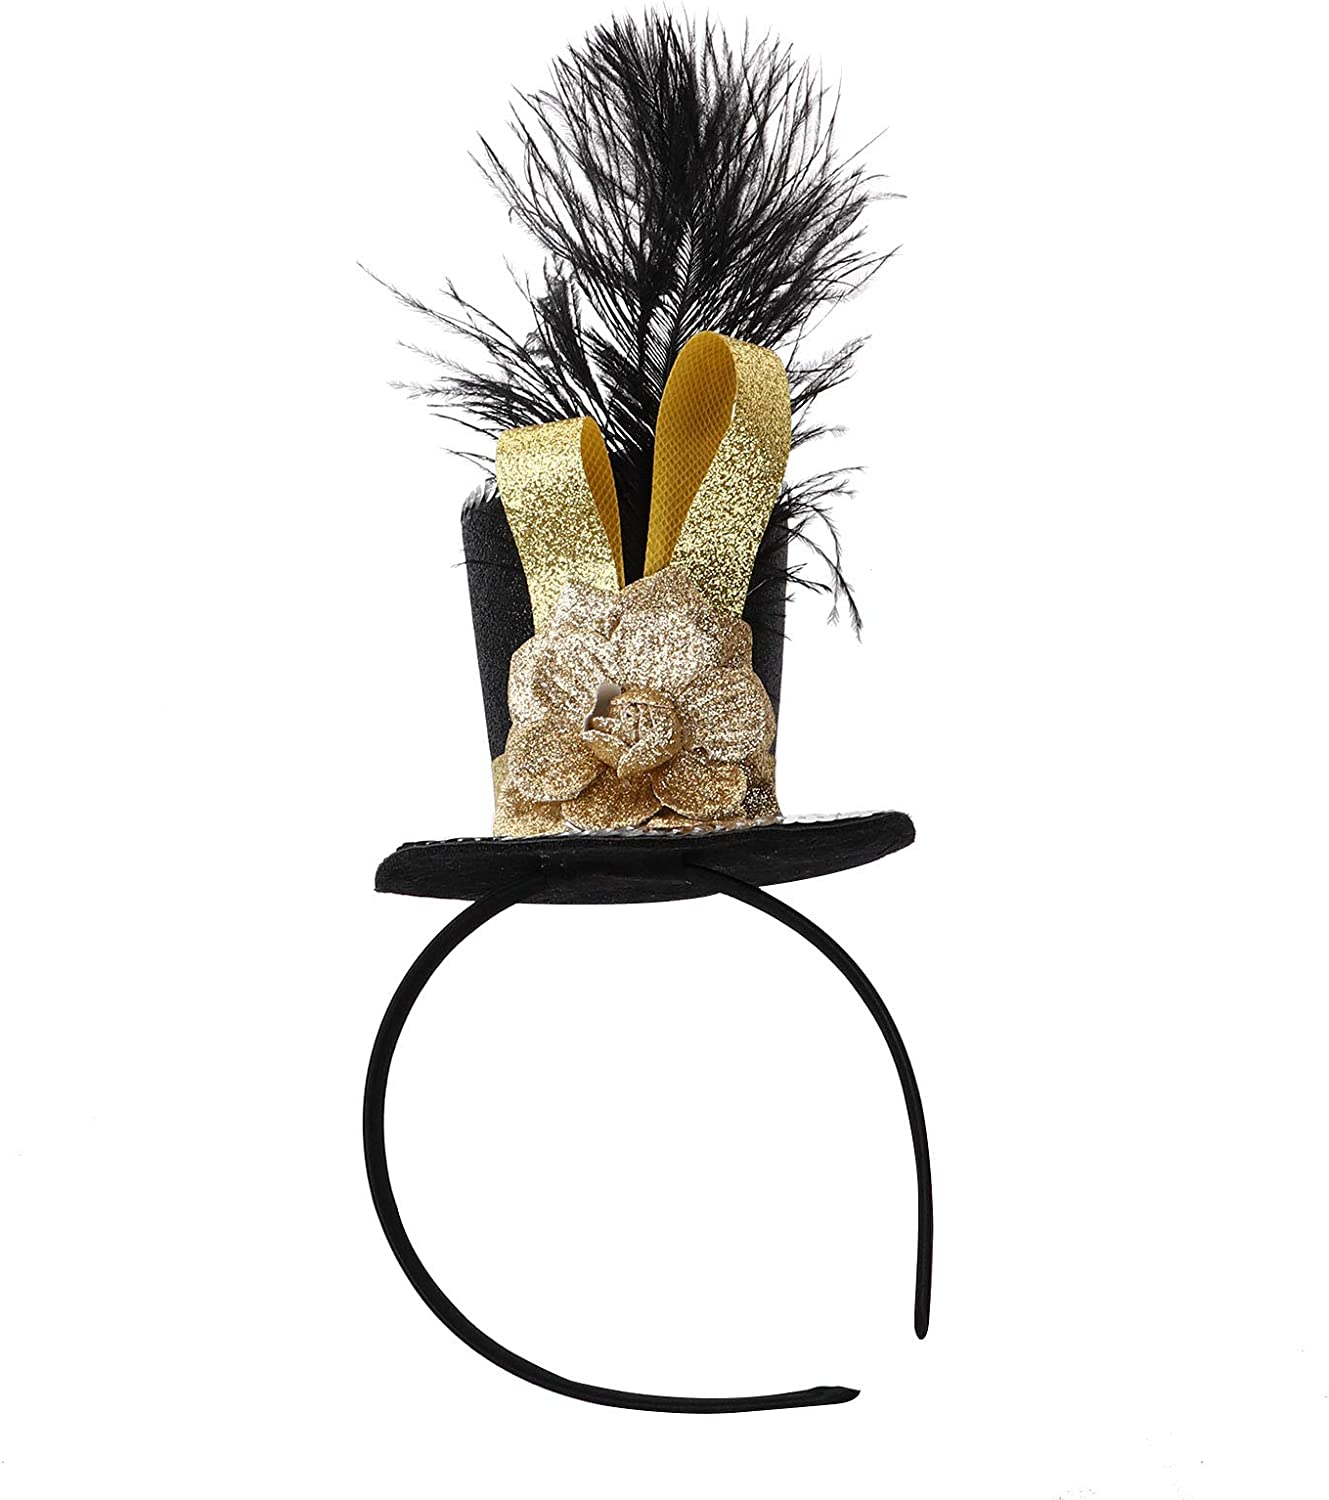 Alvivi 1 Pc Mini Top Hat Headband with Feathers & Flower Sparkle Fascinator for Halloween Party Festival Cosplay Photo Prop